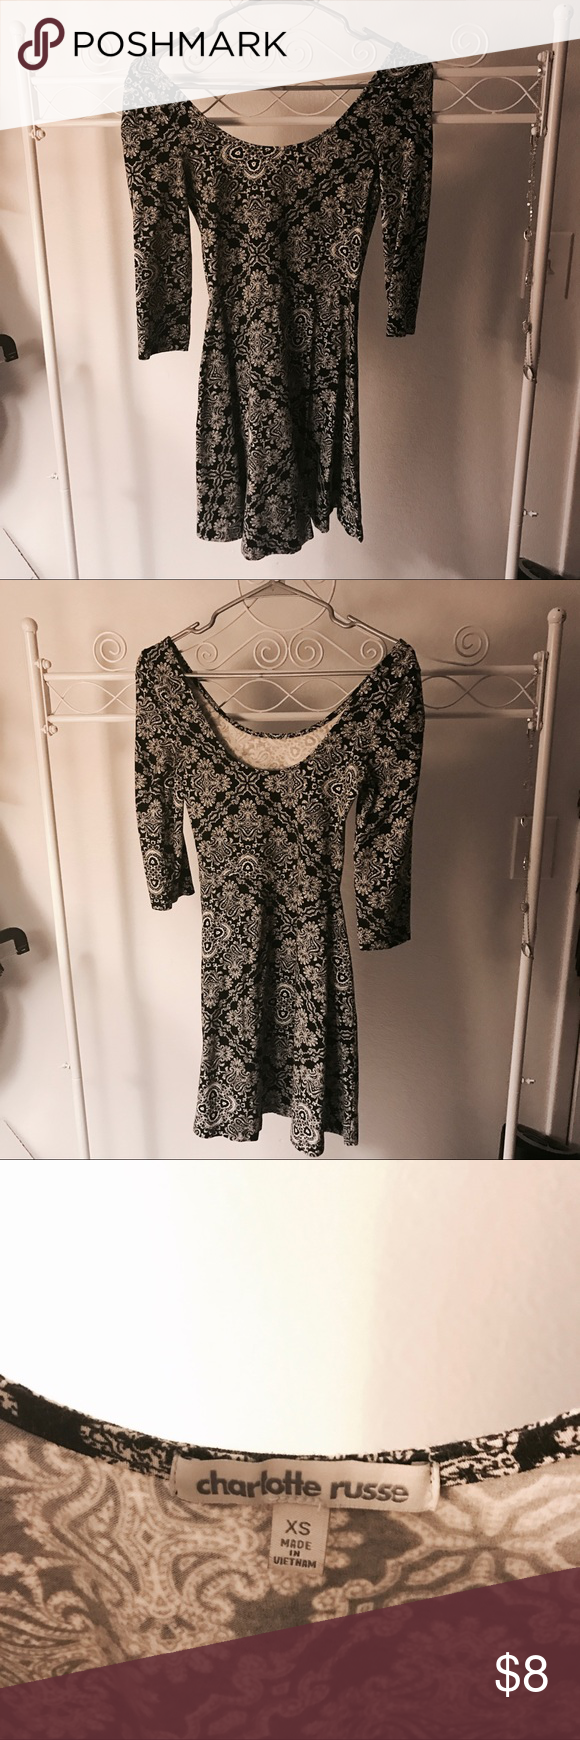 Charlotte russe fit and flaire cute dress that you can dress up or